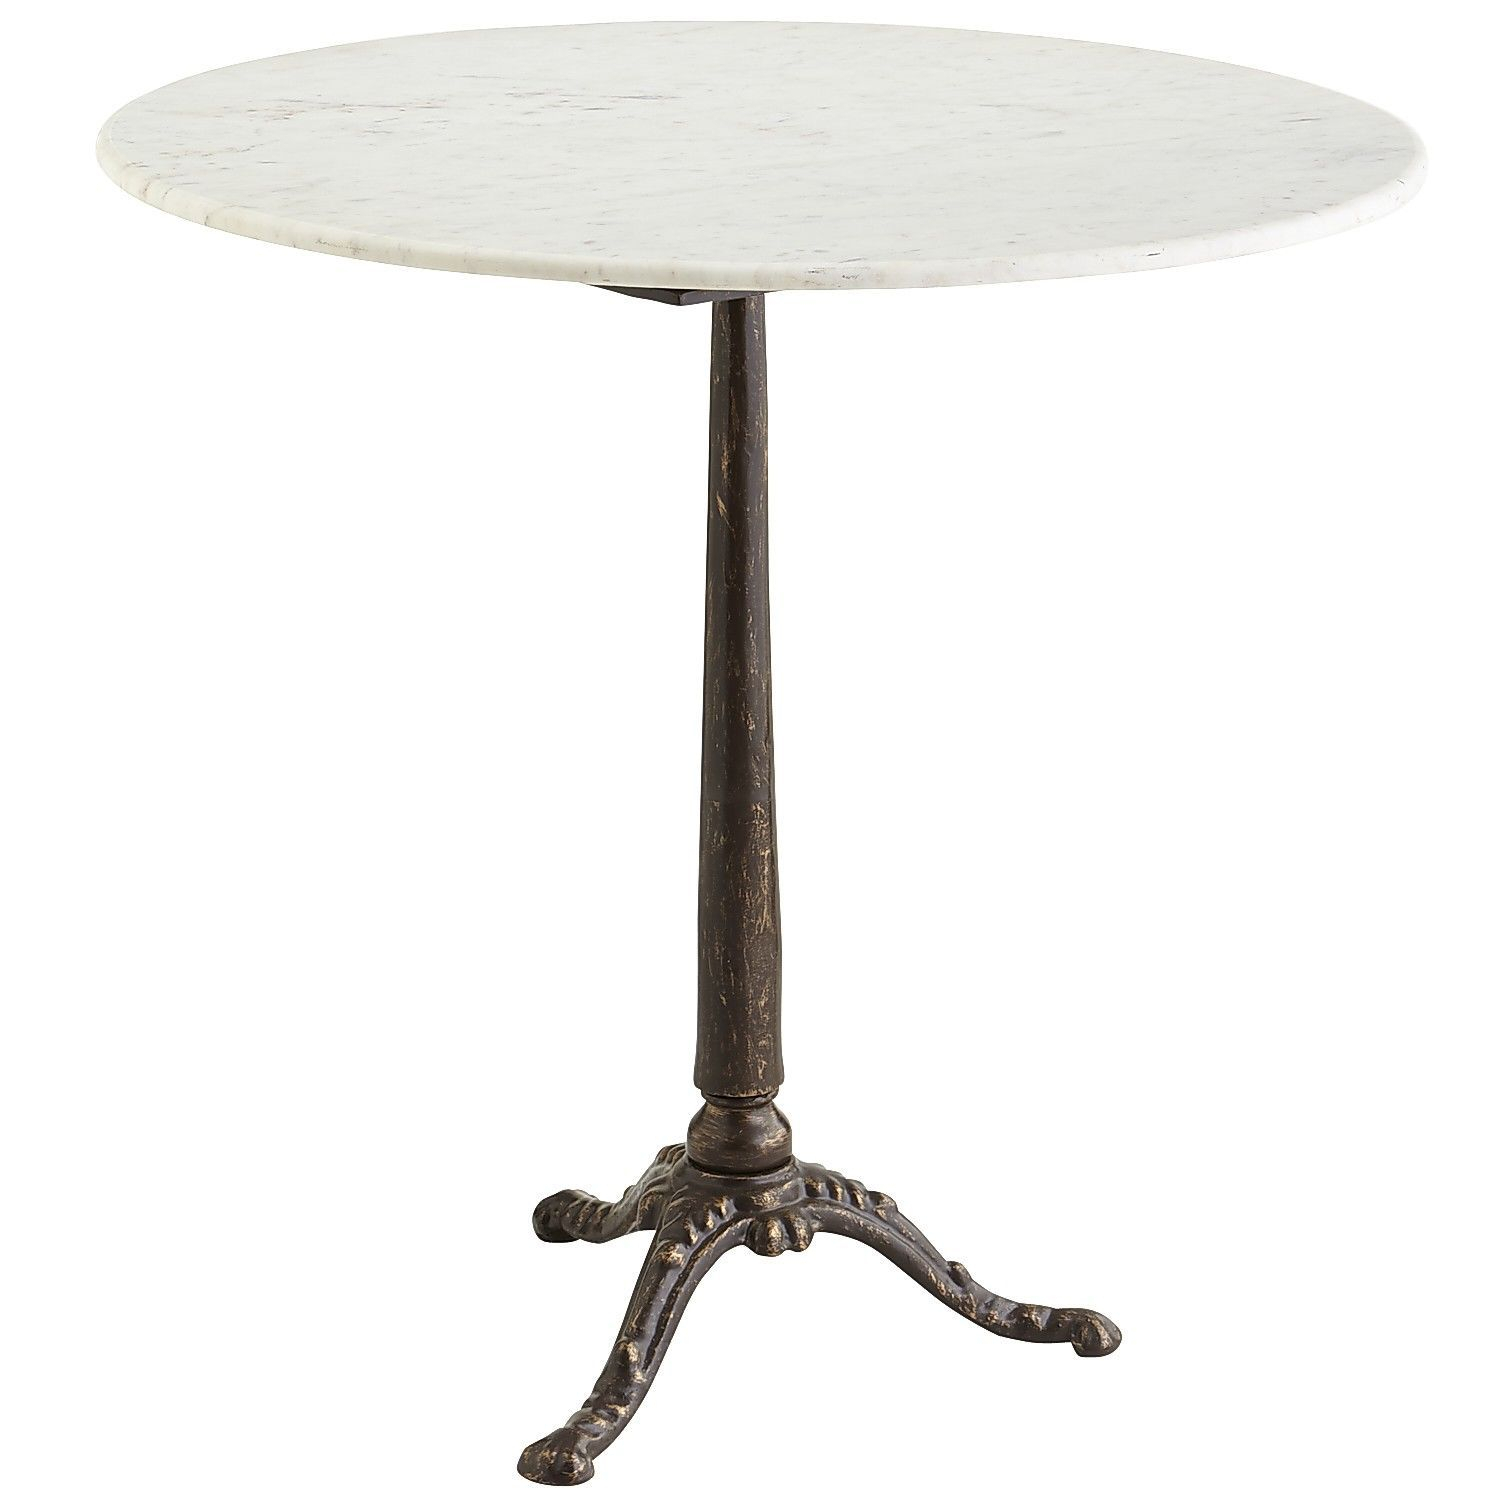 Marble Bistro Table | Pier 1 Imports In 2019 | Marble Bistro Intended For Latest Rae Round Marble Bistro Tables (View 2 of 25)